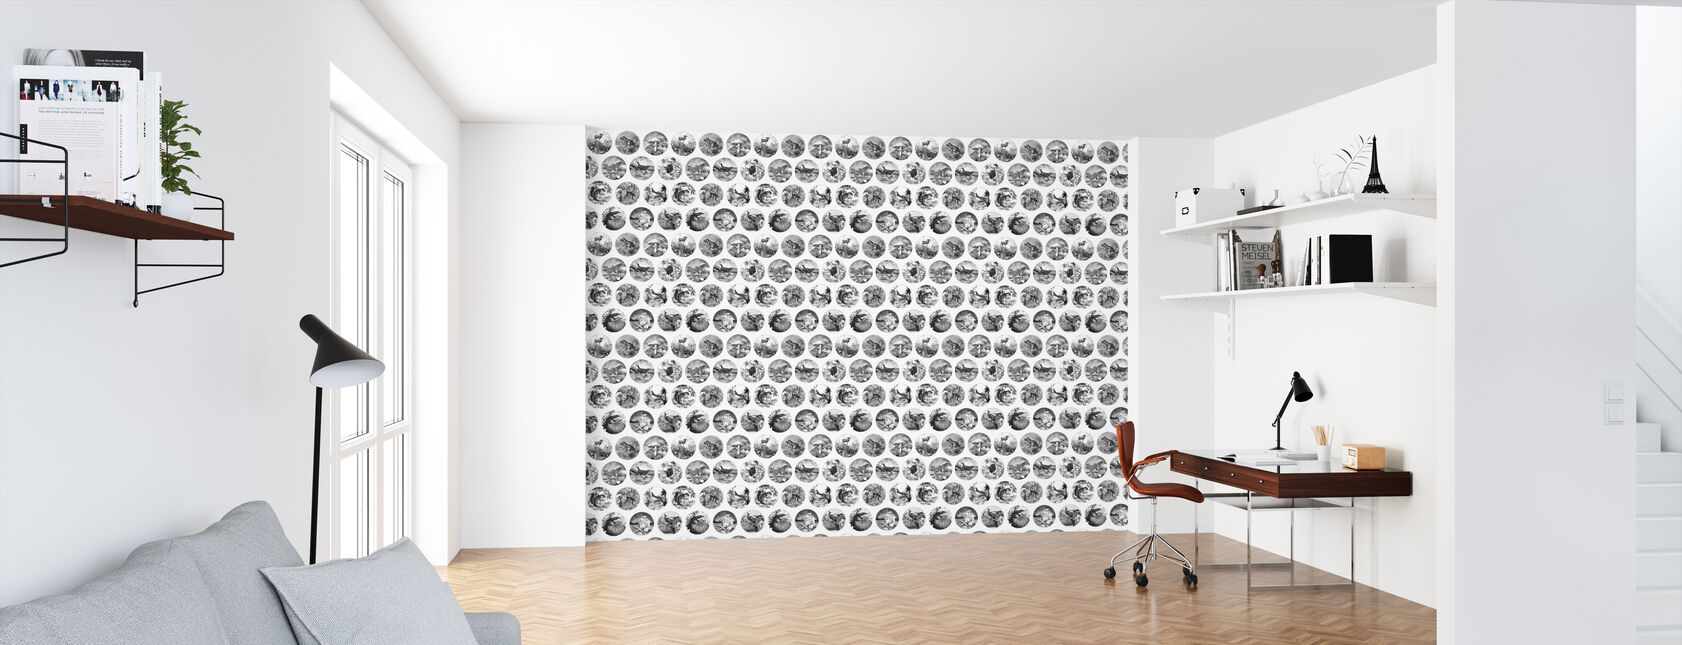 Darwin on a Plate - Wallpaper - Office